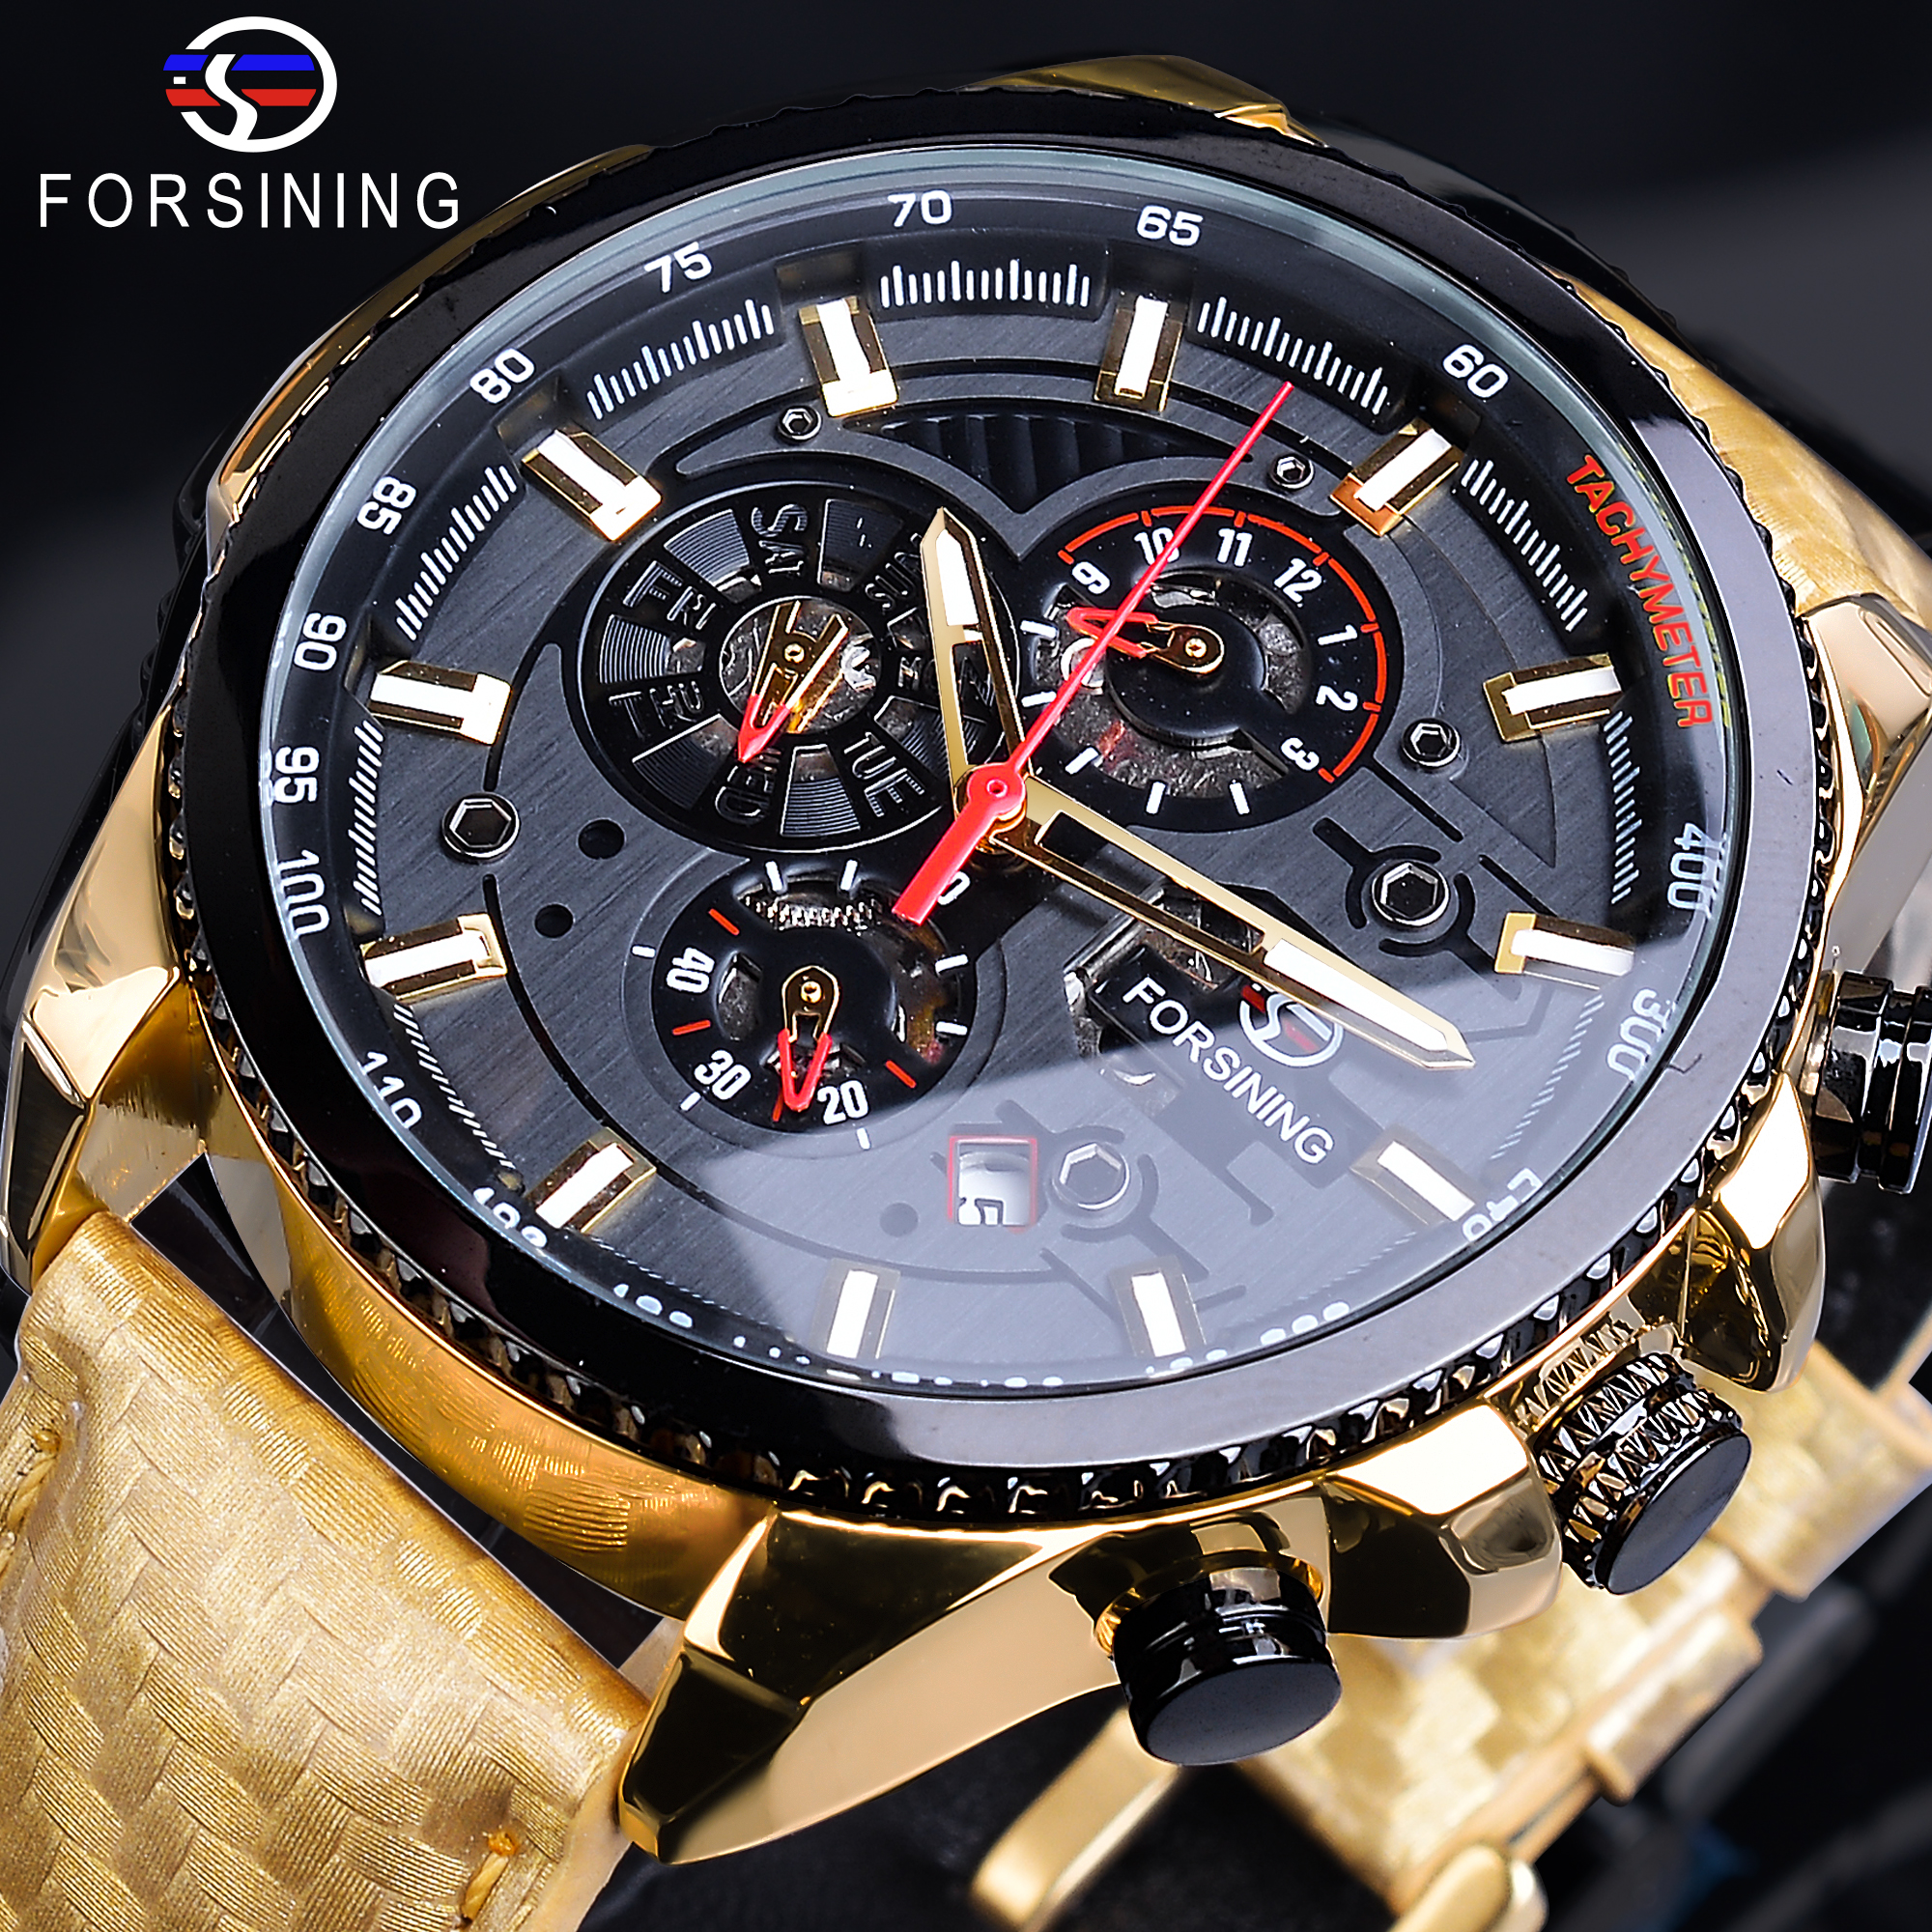 Forsining Men Wrist Watches Luxury Golden Mechanical Male Clock Automatic Wristwatch Smooth Genuine Leather Strap Herren HorlogeForsining Men Wrist Watches Luxury Golden Mechanical Male Clock Automatic Wristwatch Smooth Genuine Leather Strap Herren Horloge